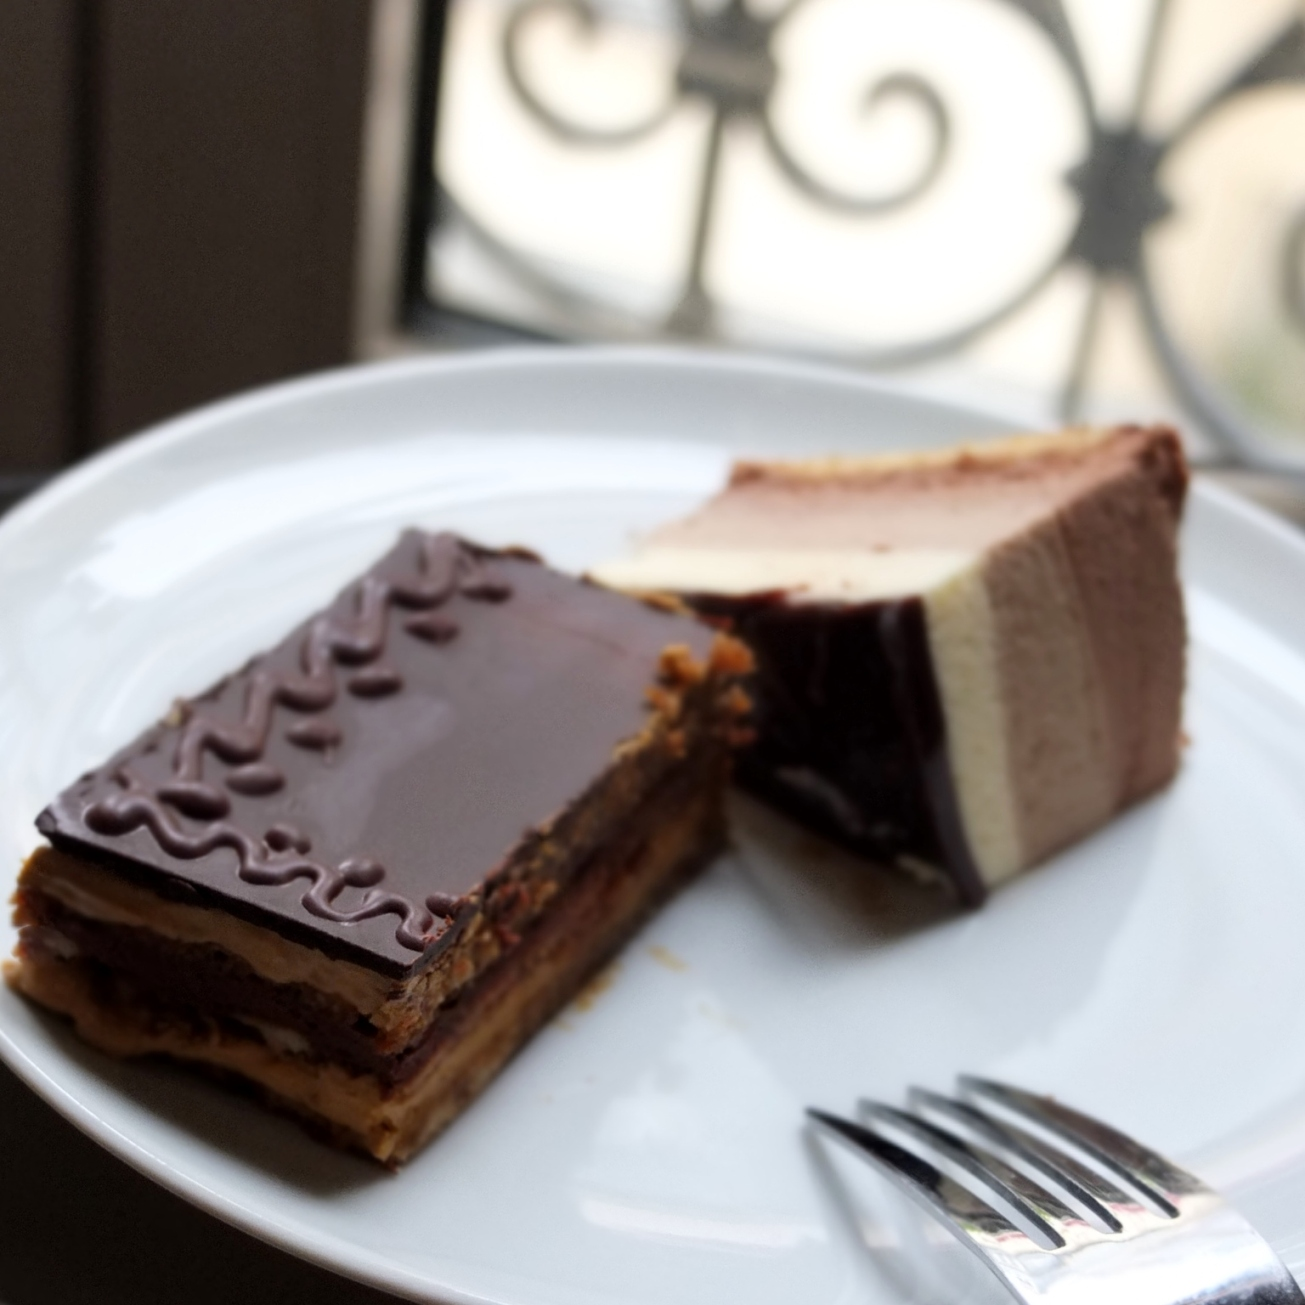 Cake breakfast of opera cake and three chocolate bavarian mousse cake